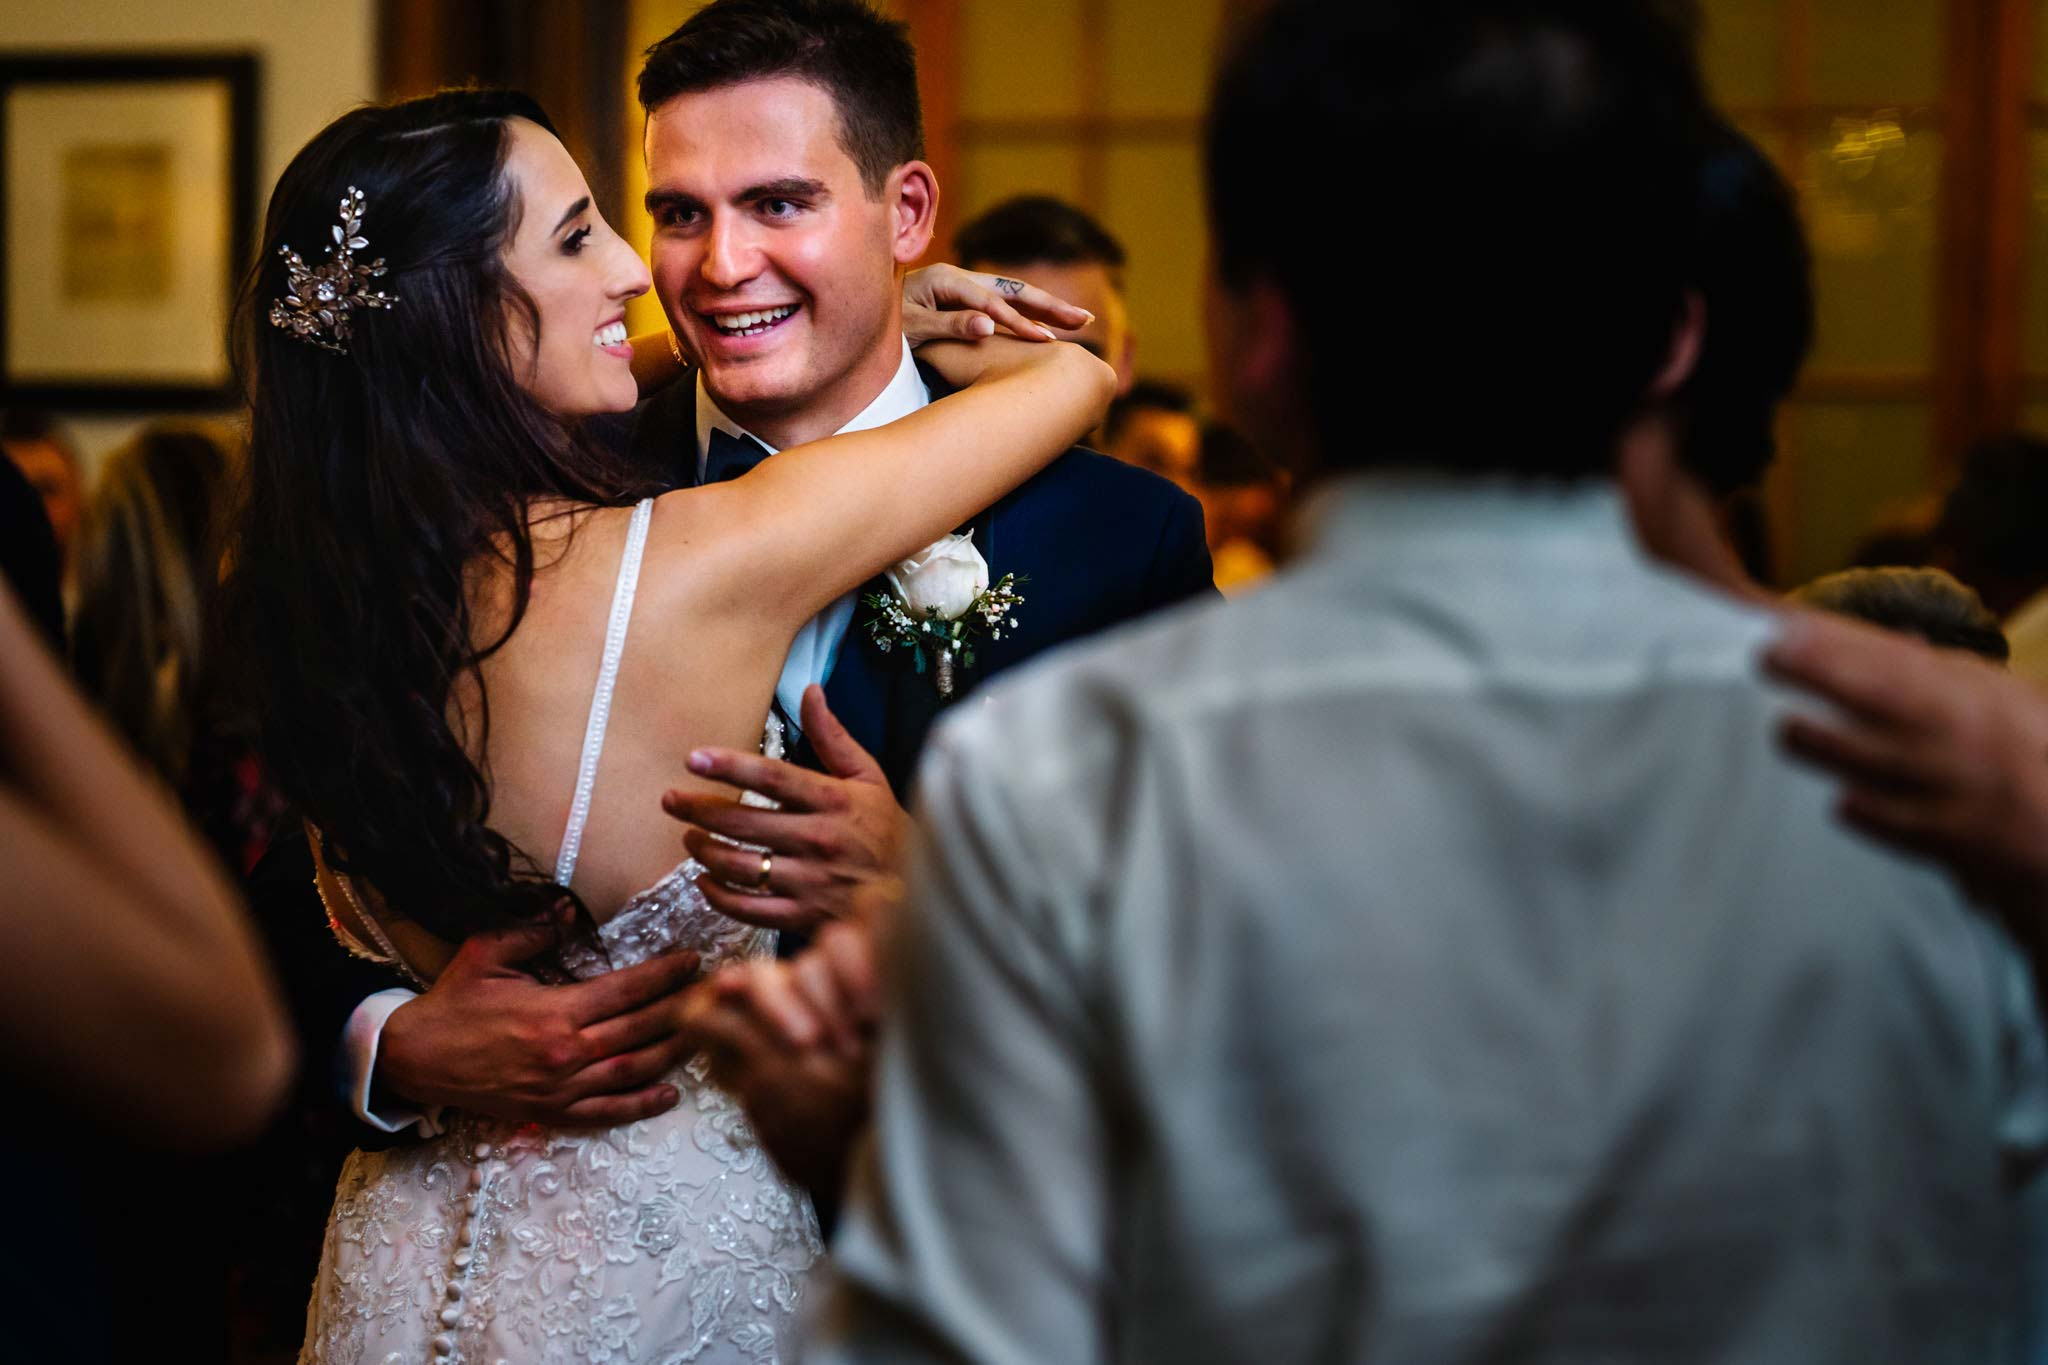 Newlyweds laugh during dance at wedding reception